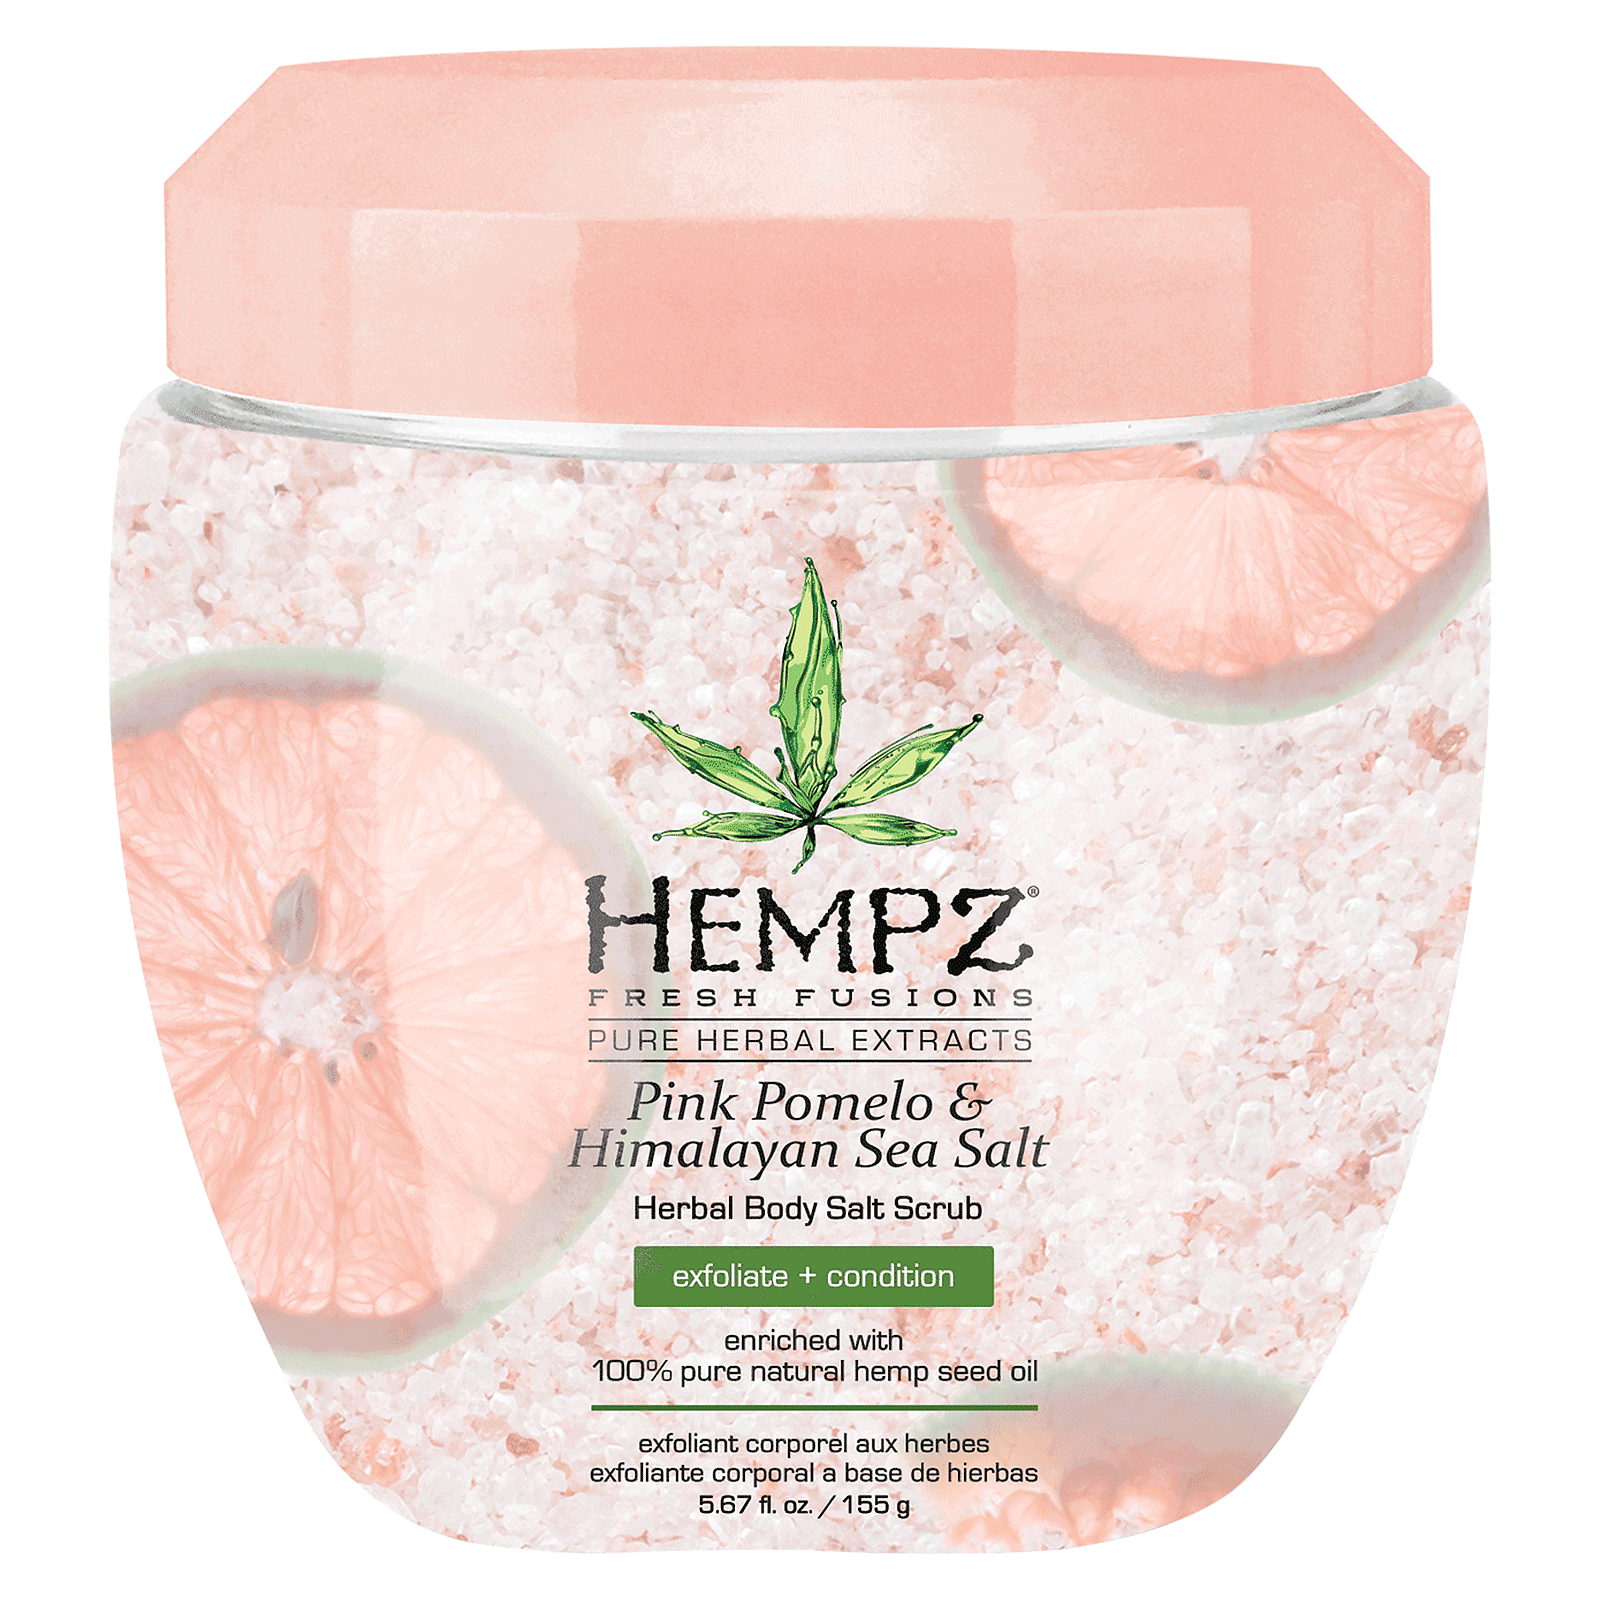 Pink Pomelo &Himalayan Sea Salt Herbal Body Salt Scrub